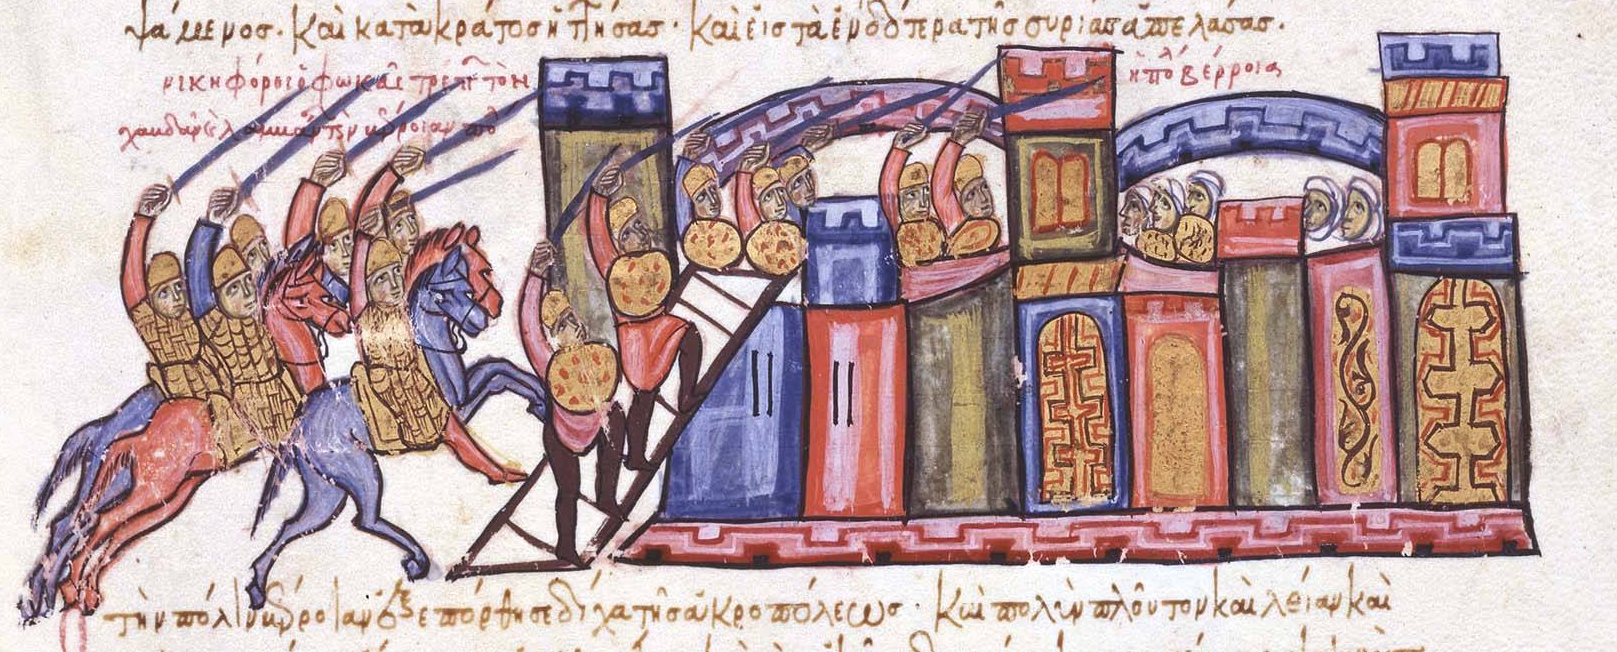 Capture of  Aleppo  by the Byzantines under Nikephoros Phokas in 962.